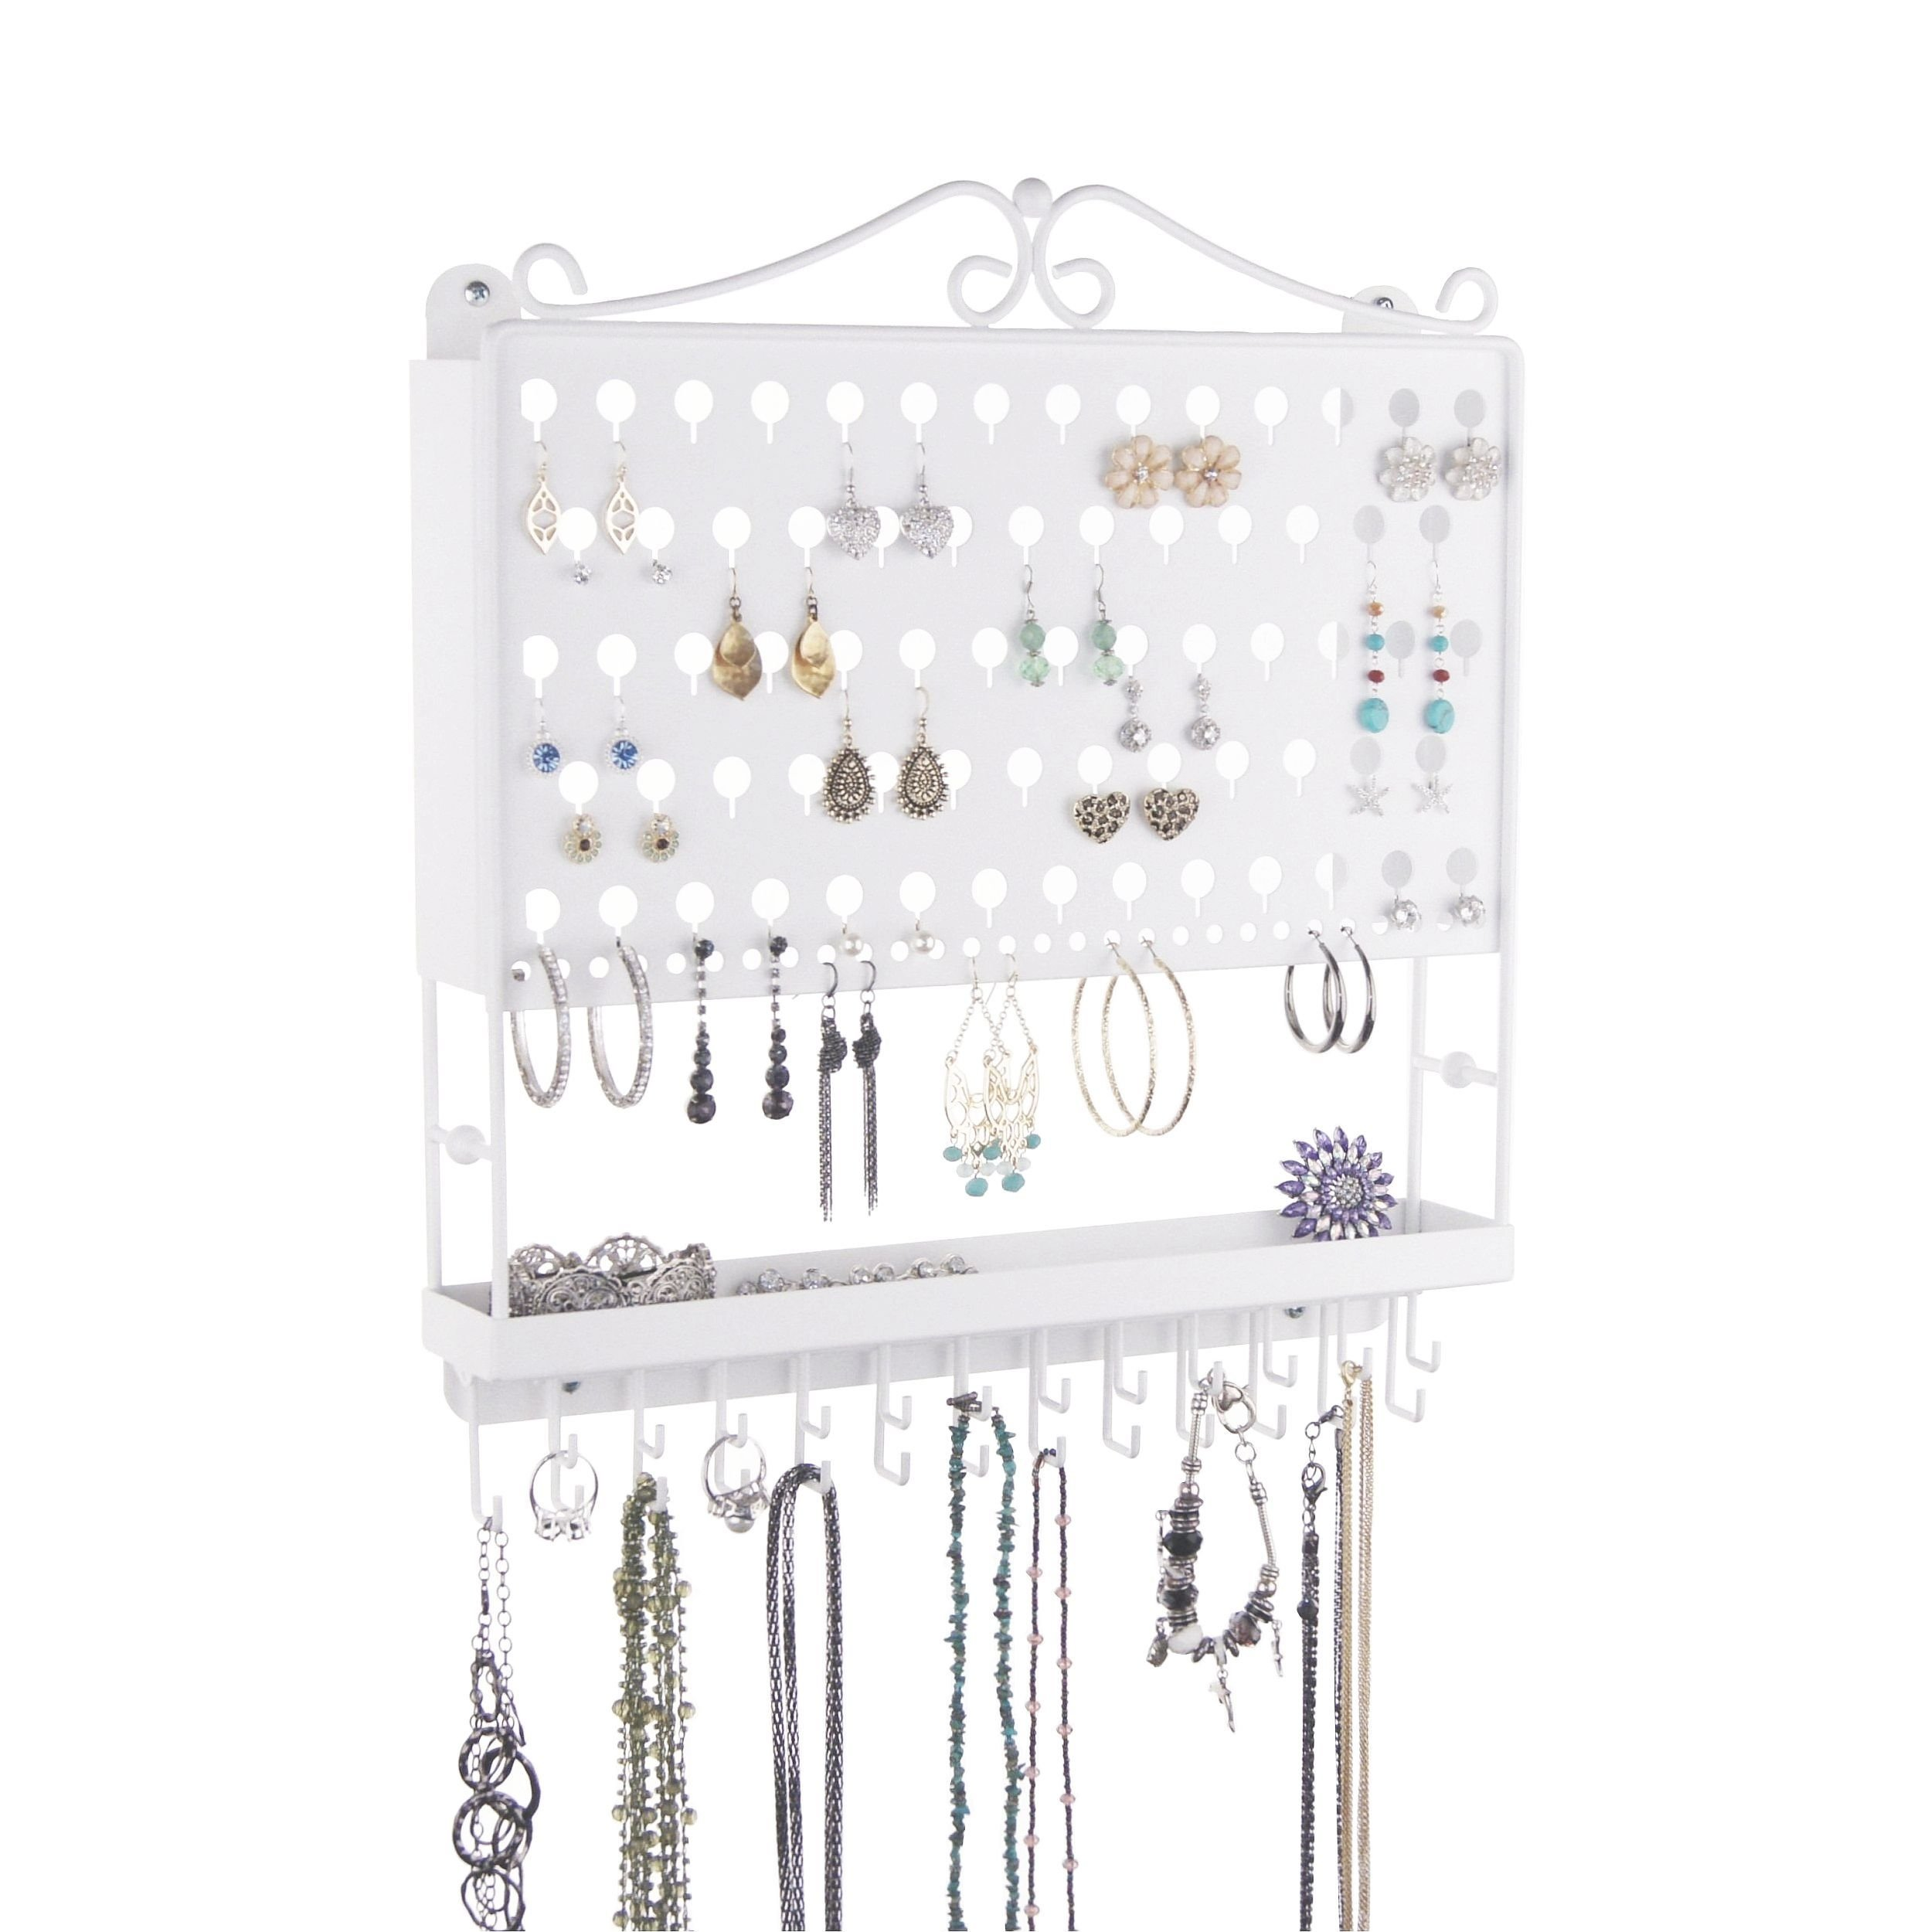 Wall Mount Jewelry Organizer Earring Holder Necklace Display Closet Storage Rack, White